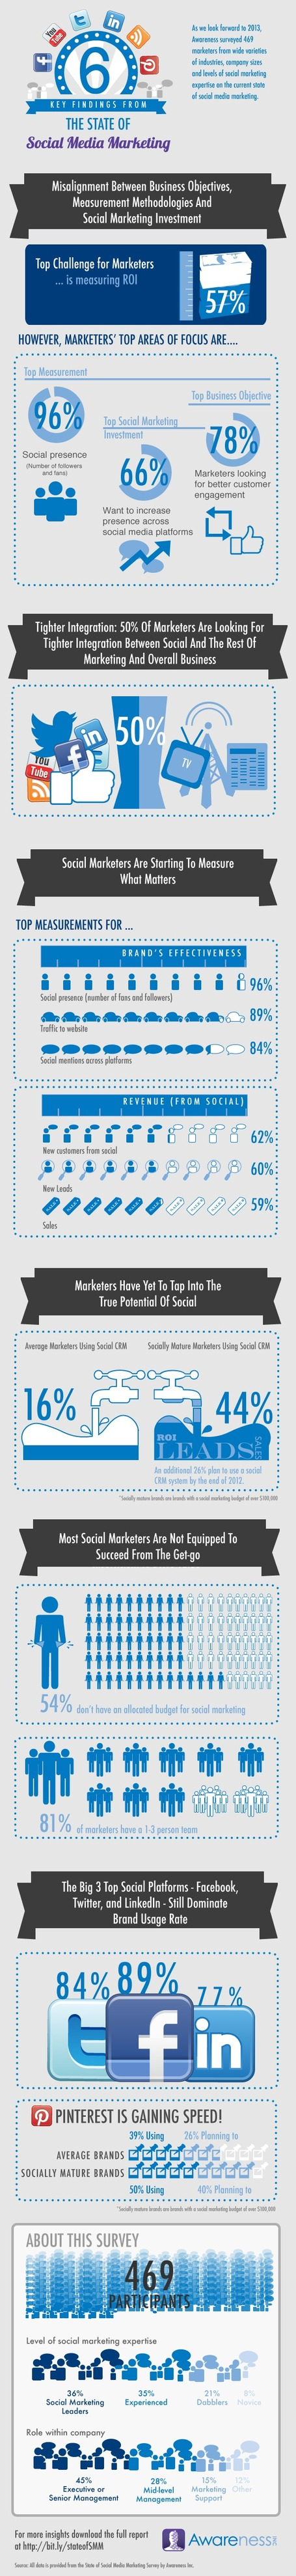 State of Social Marketing Survey [Infographic] | Social Media Epic | Scoop.it